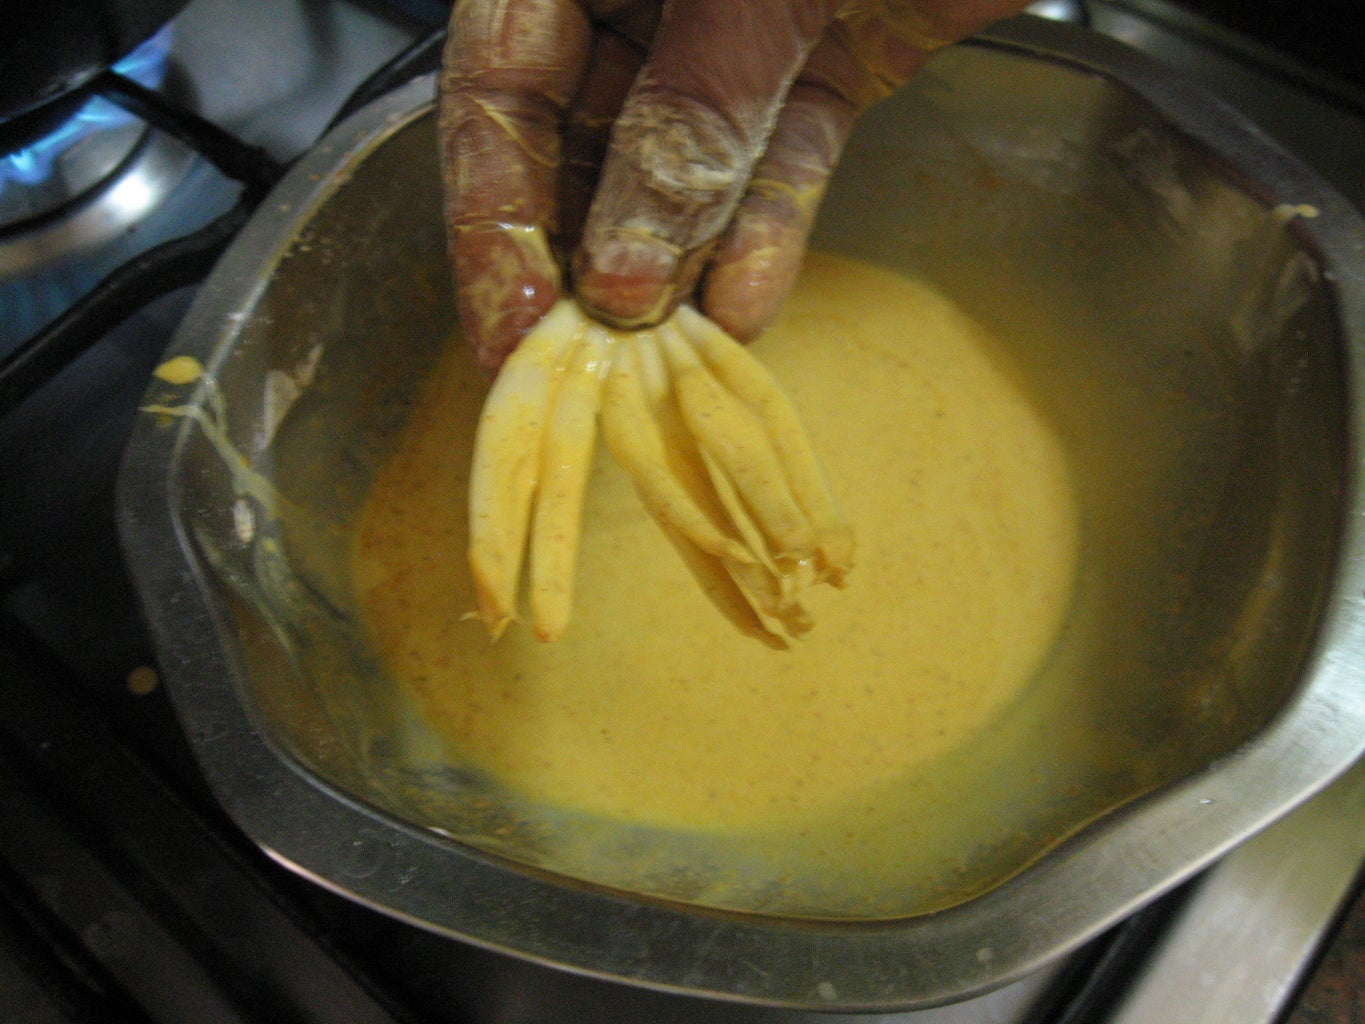 Dip in Batter and Deep-fry